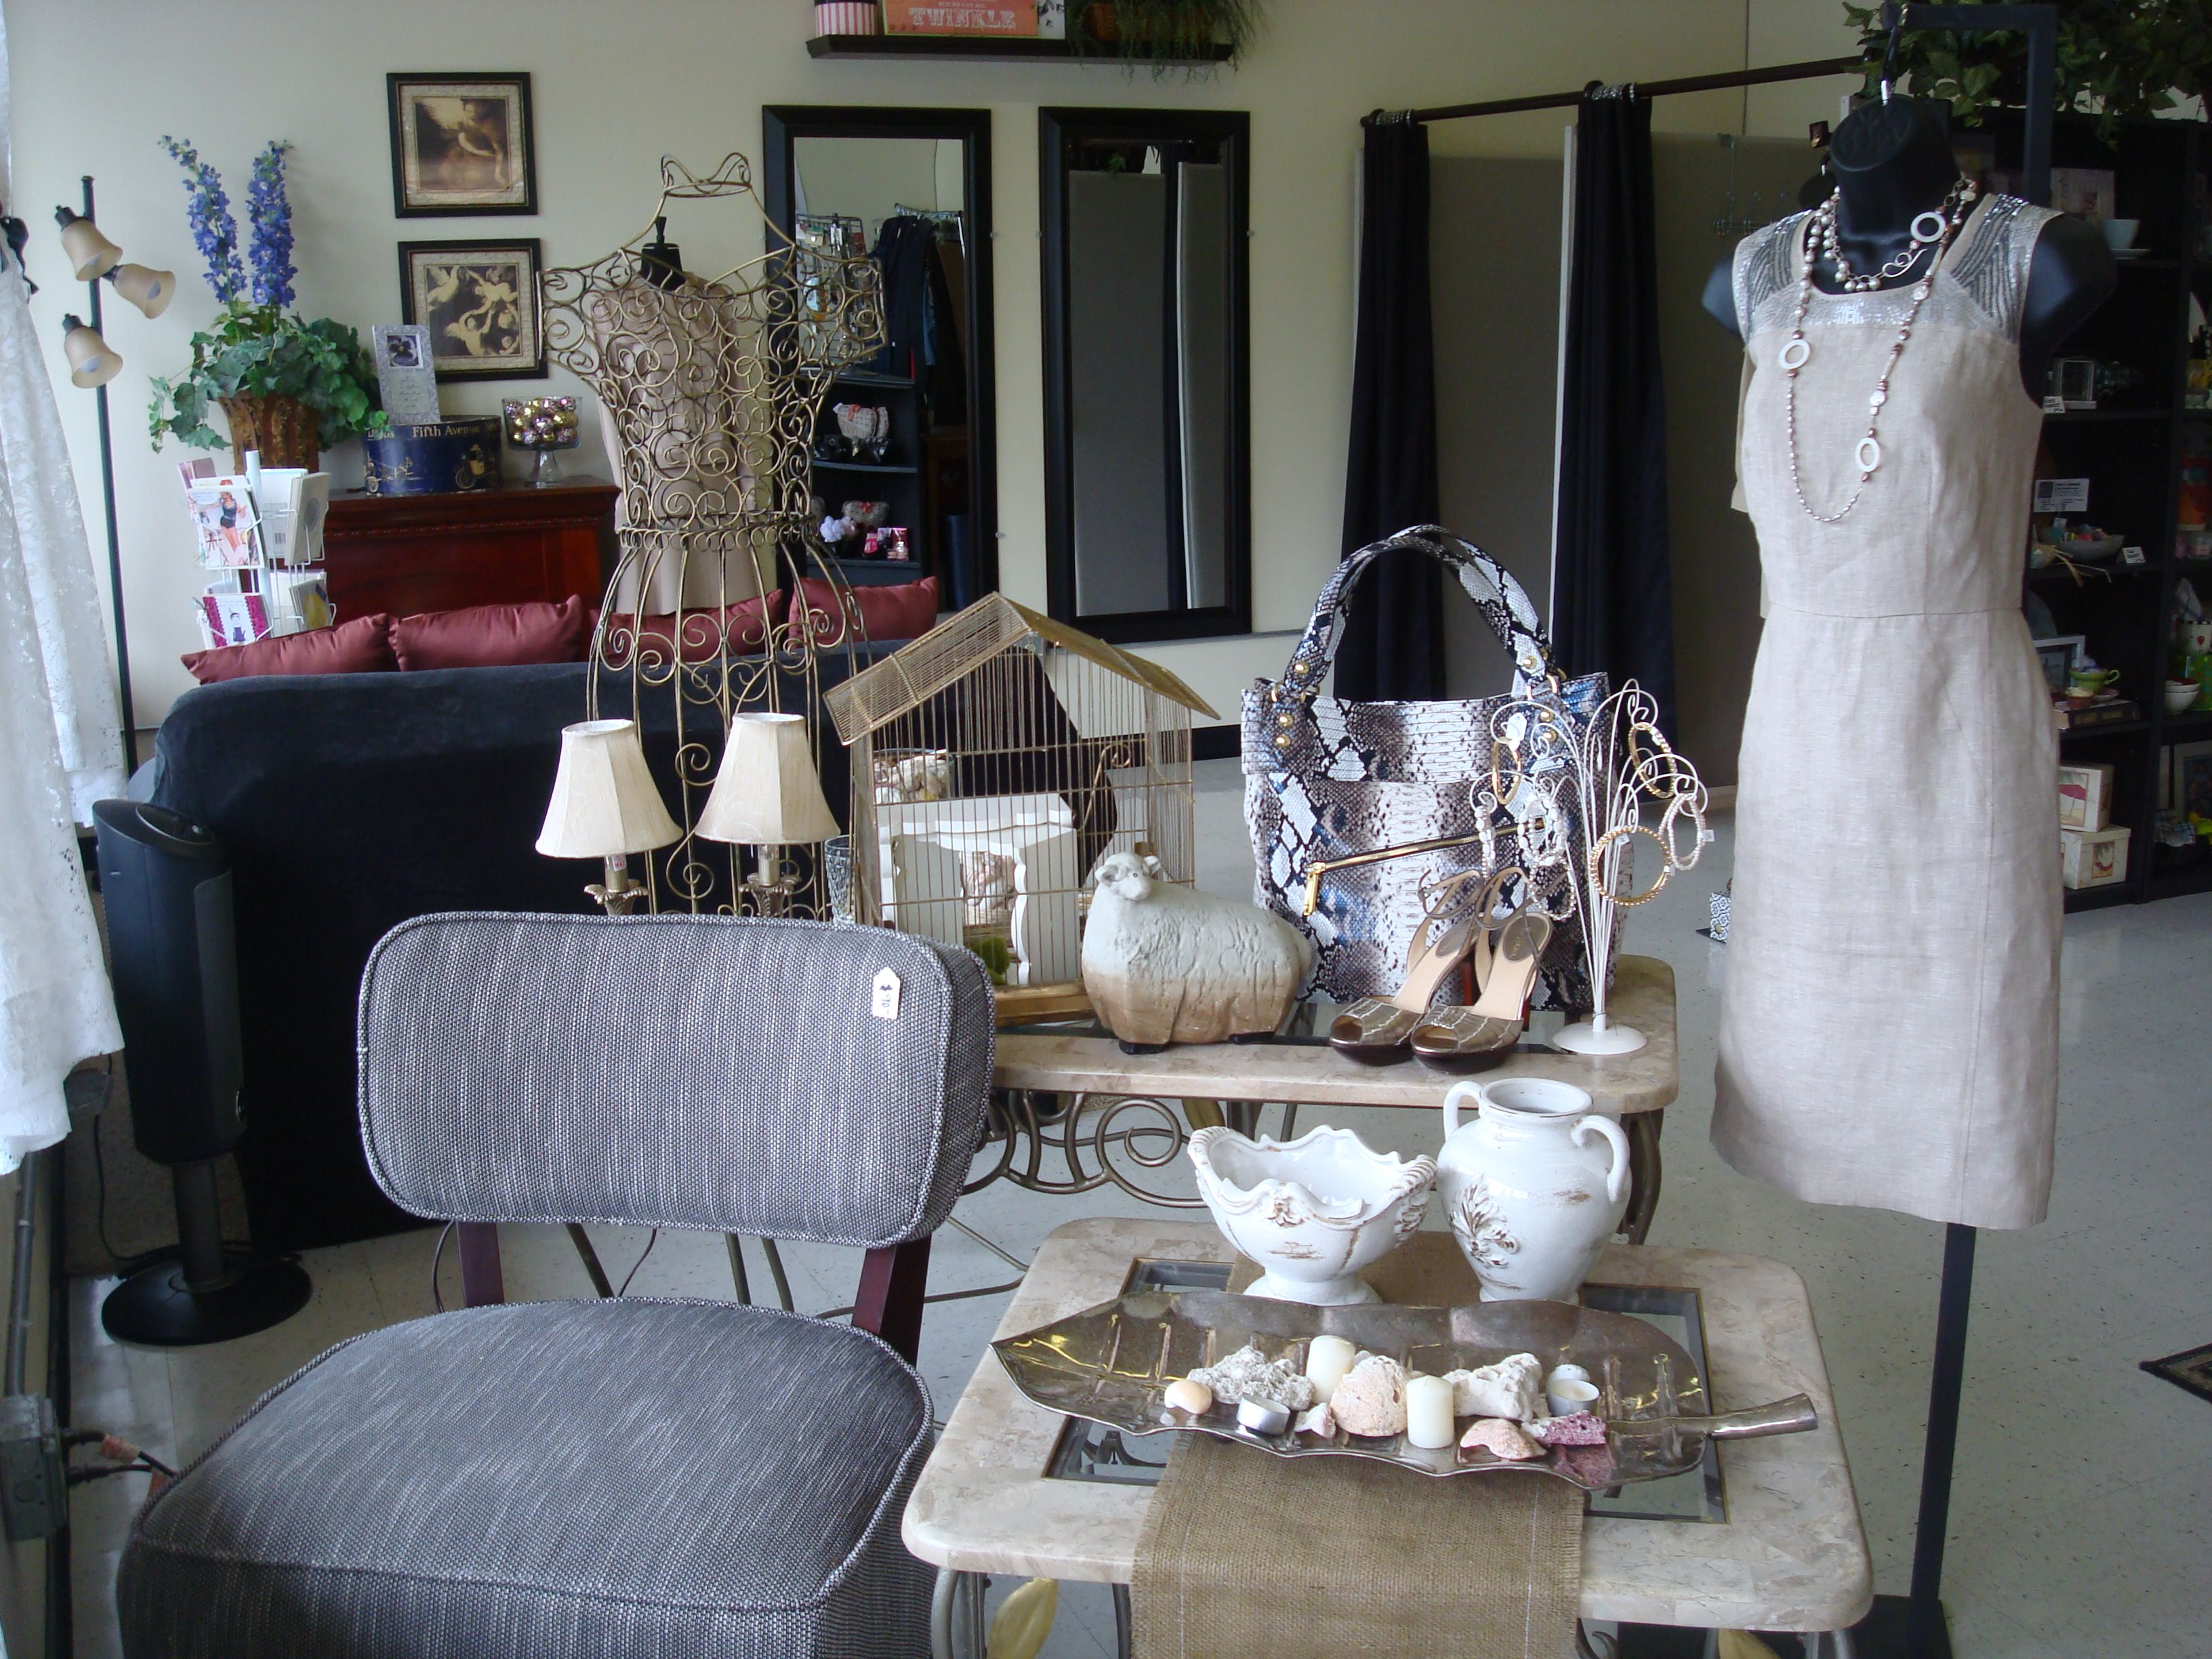 Display sweet treasures boutique display and store ideas